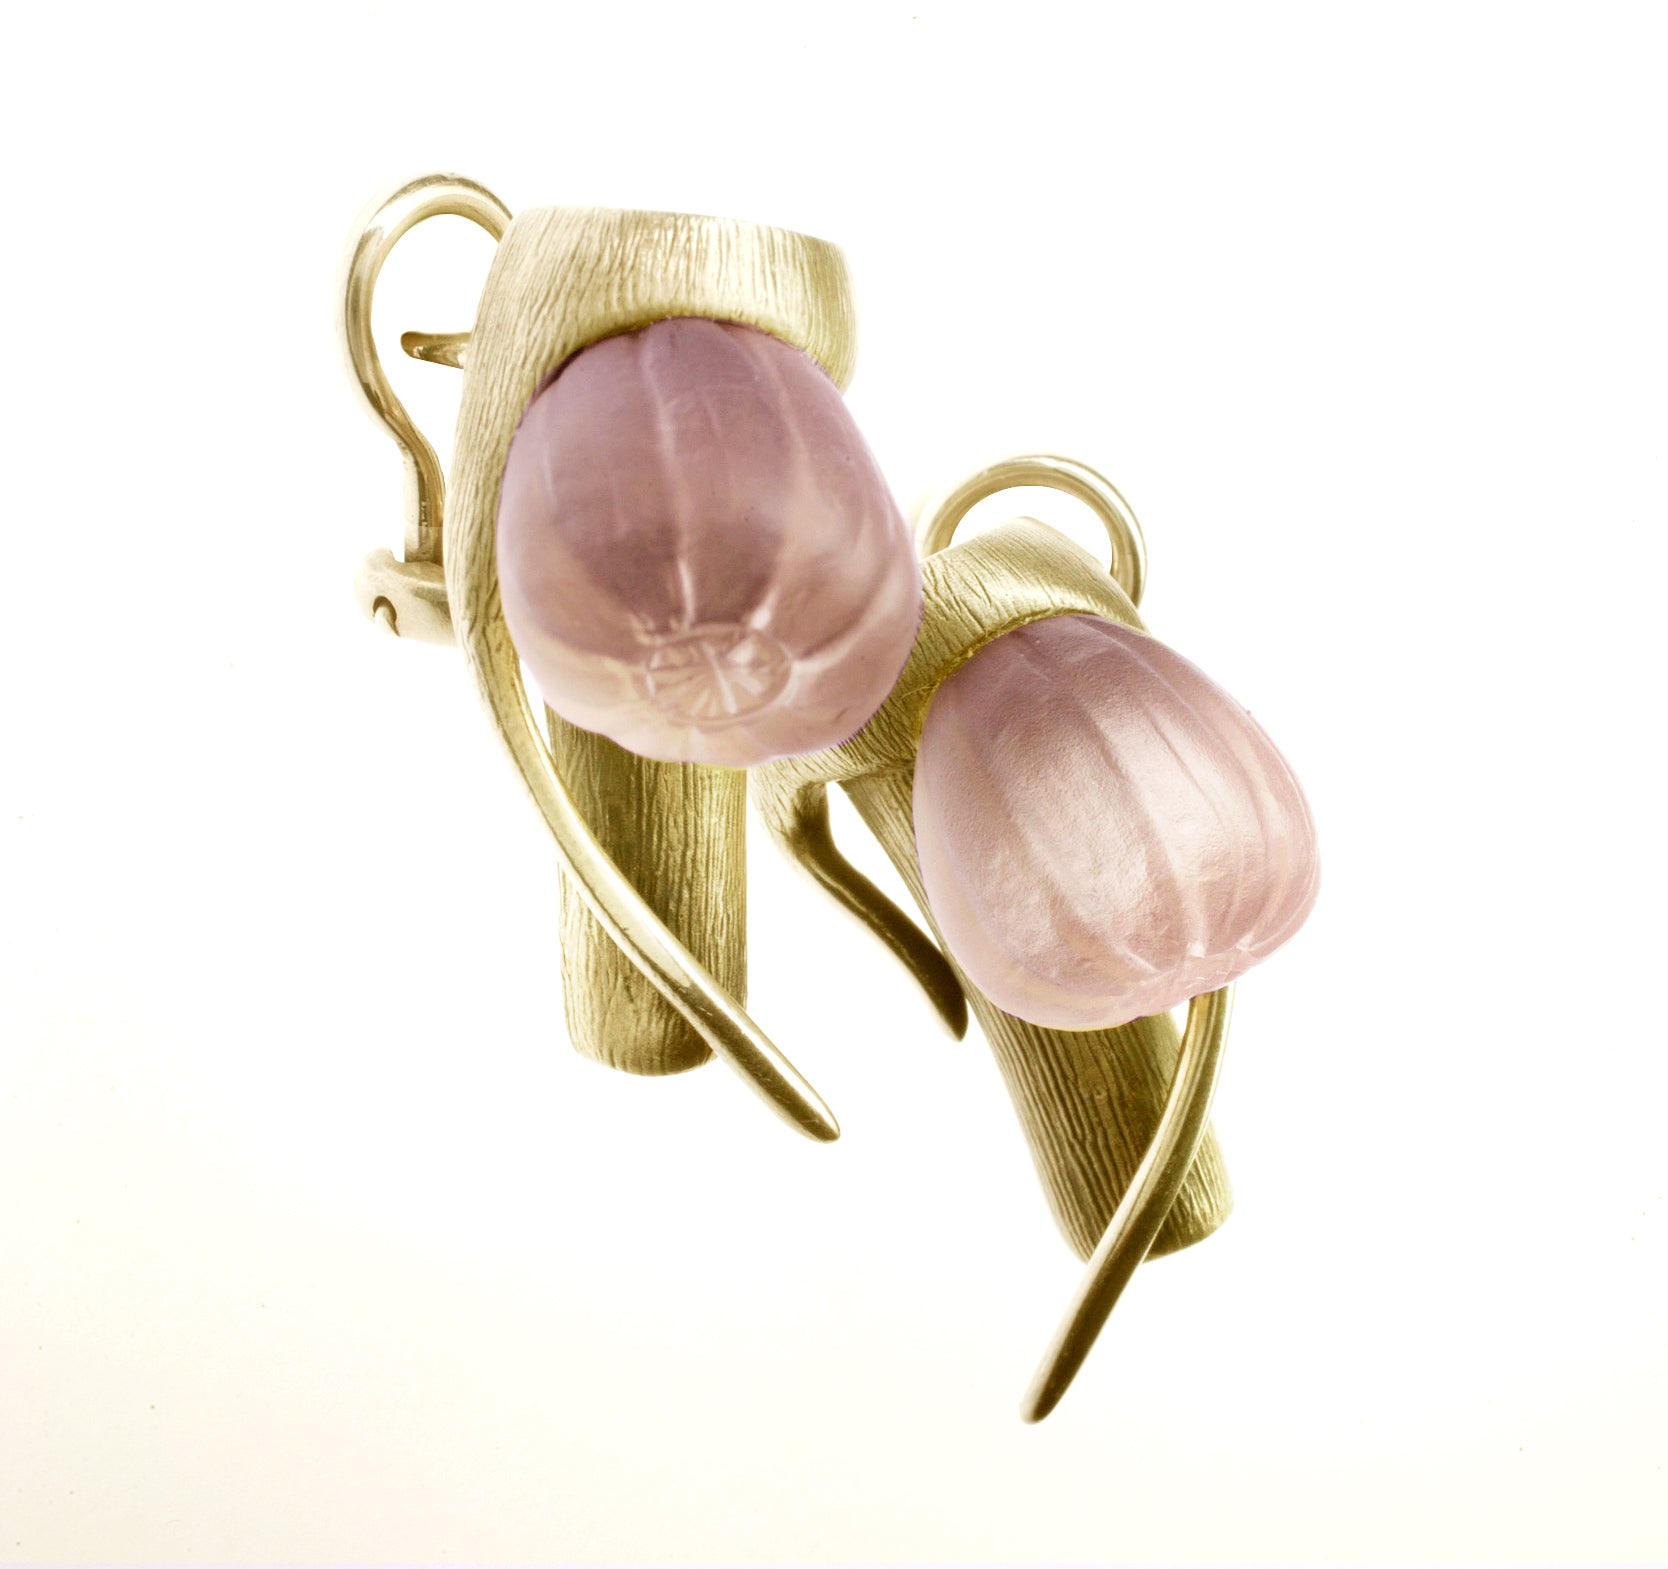 14 Karat Yellow Gold Earrings by the Artist